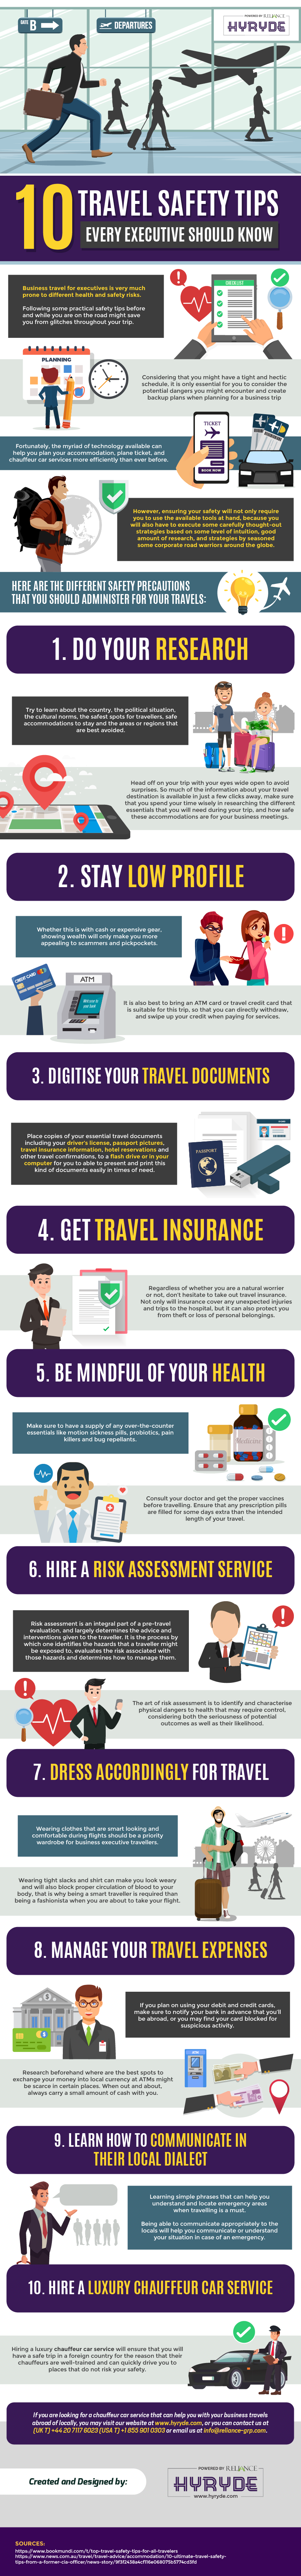 10 Travel Safety Tips Every Executive Should Know